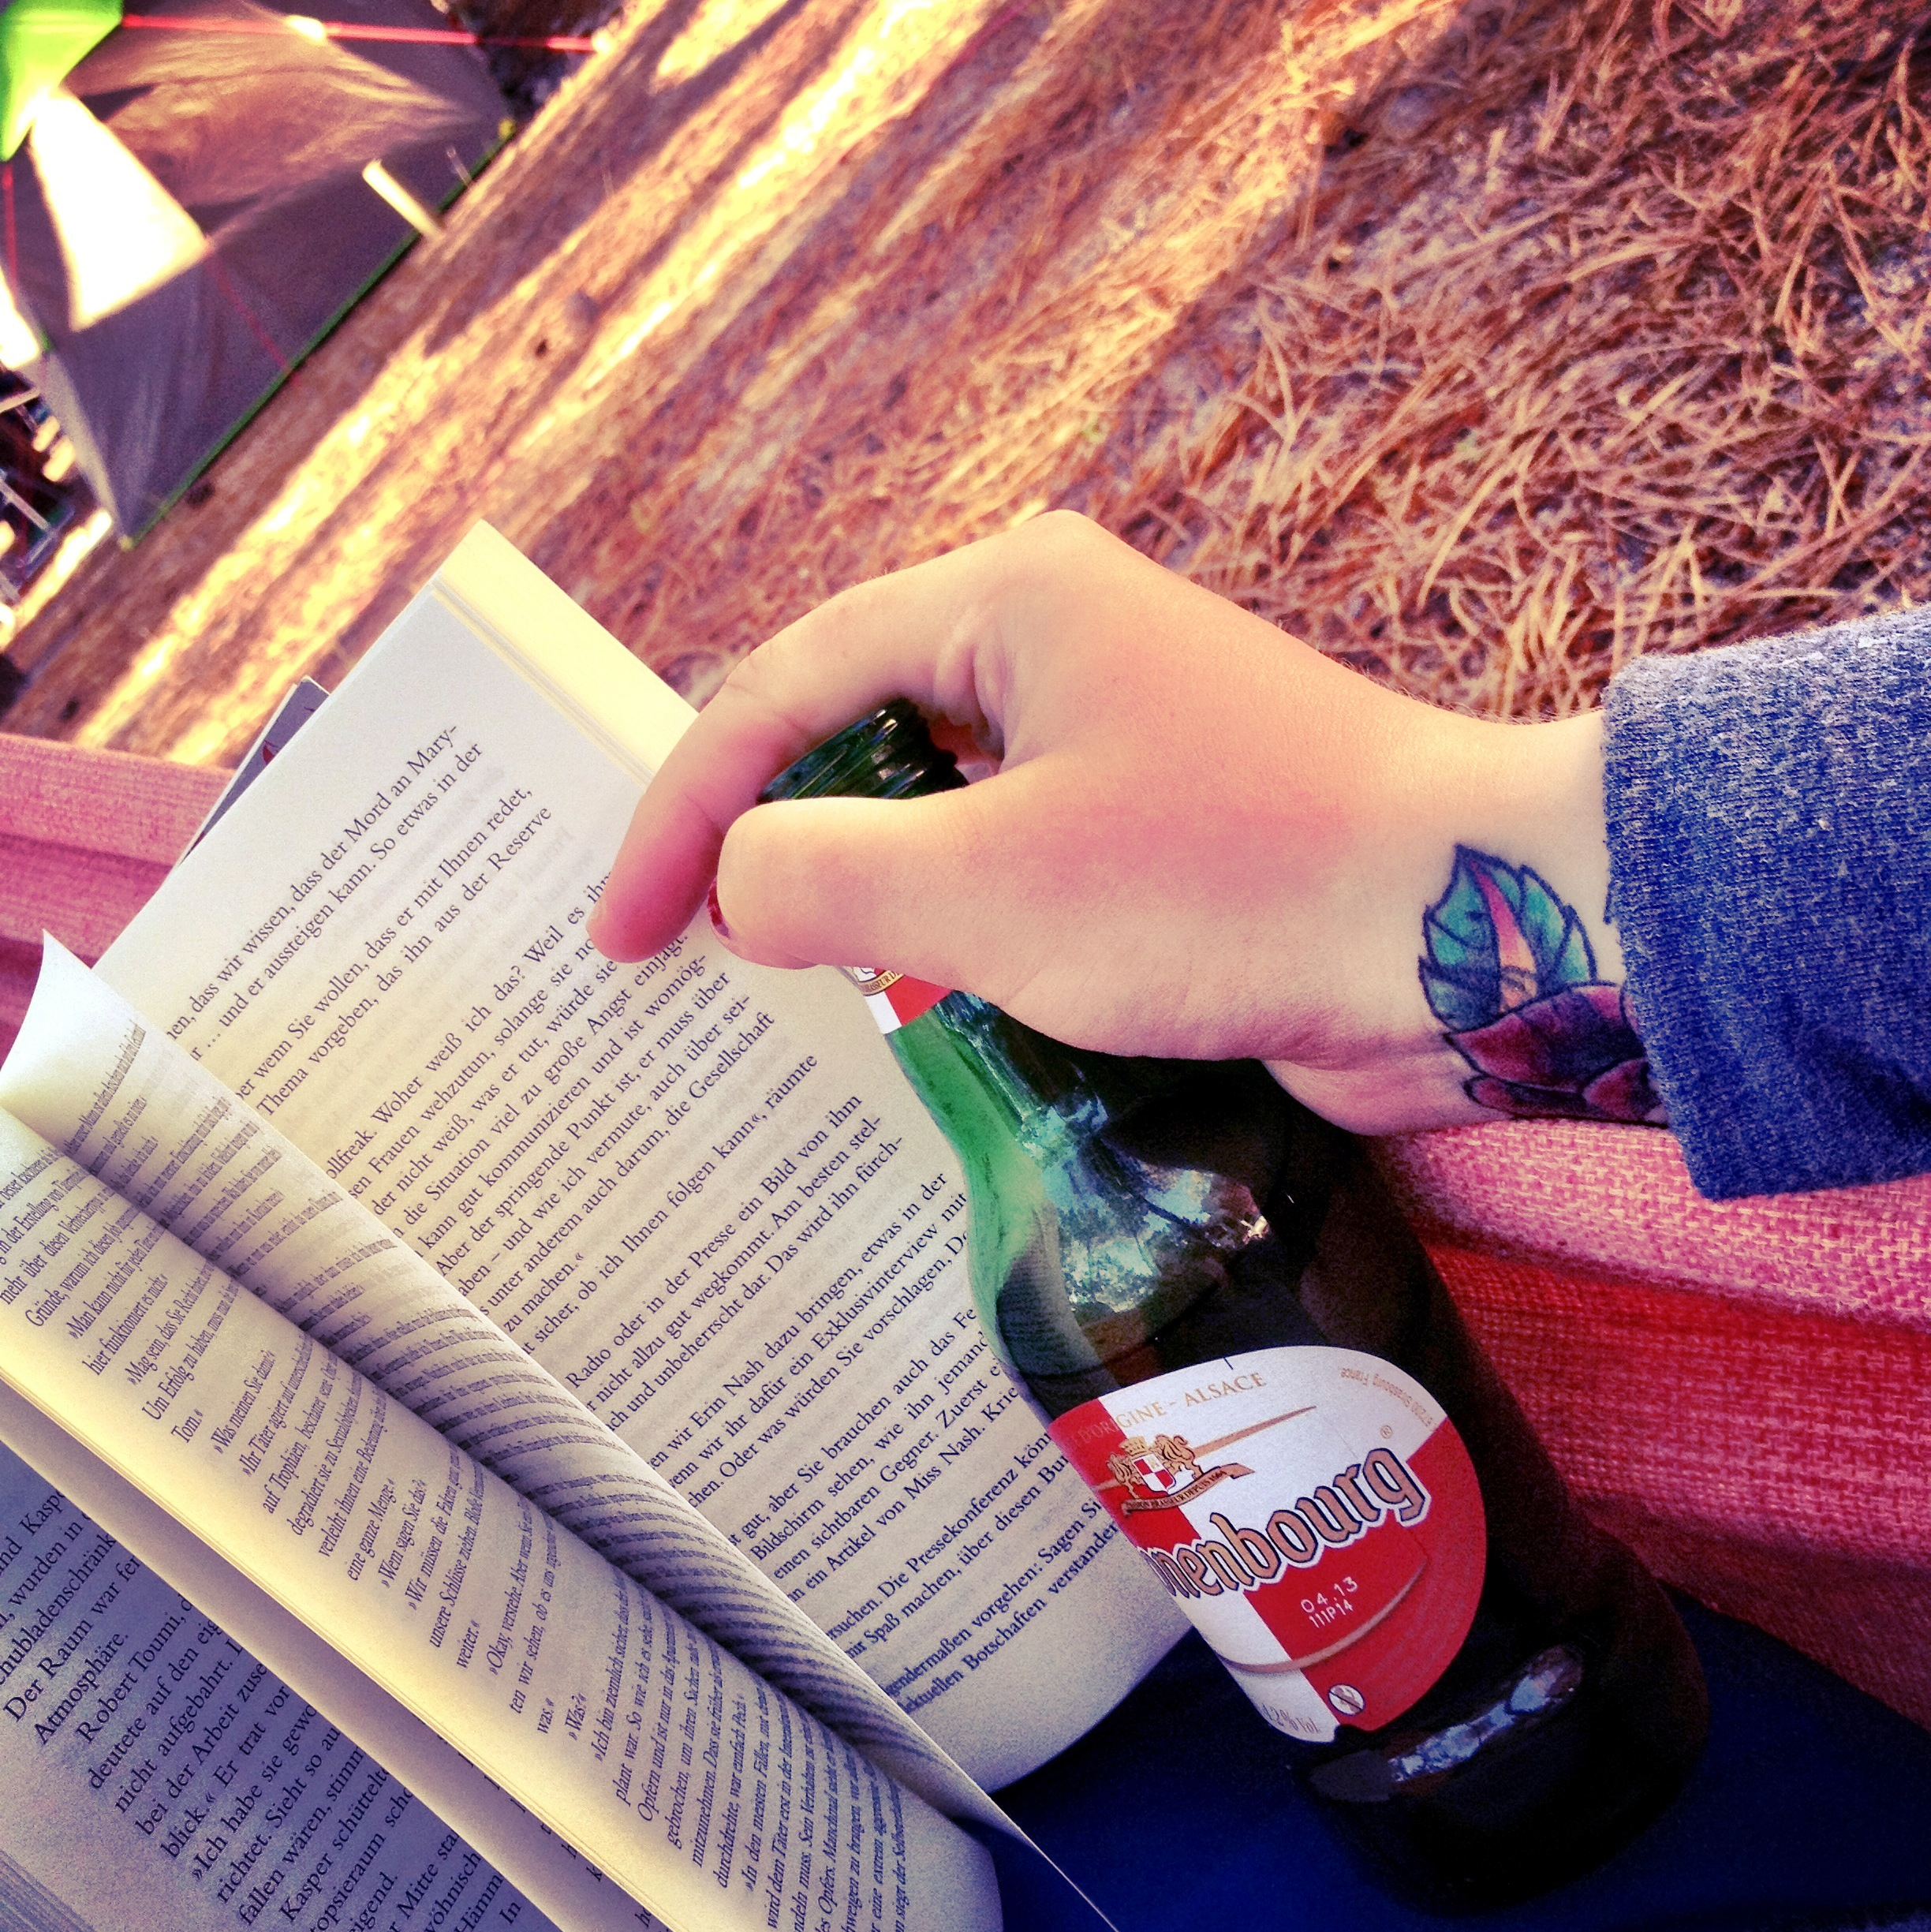 Izzi Reckless Book and Beer